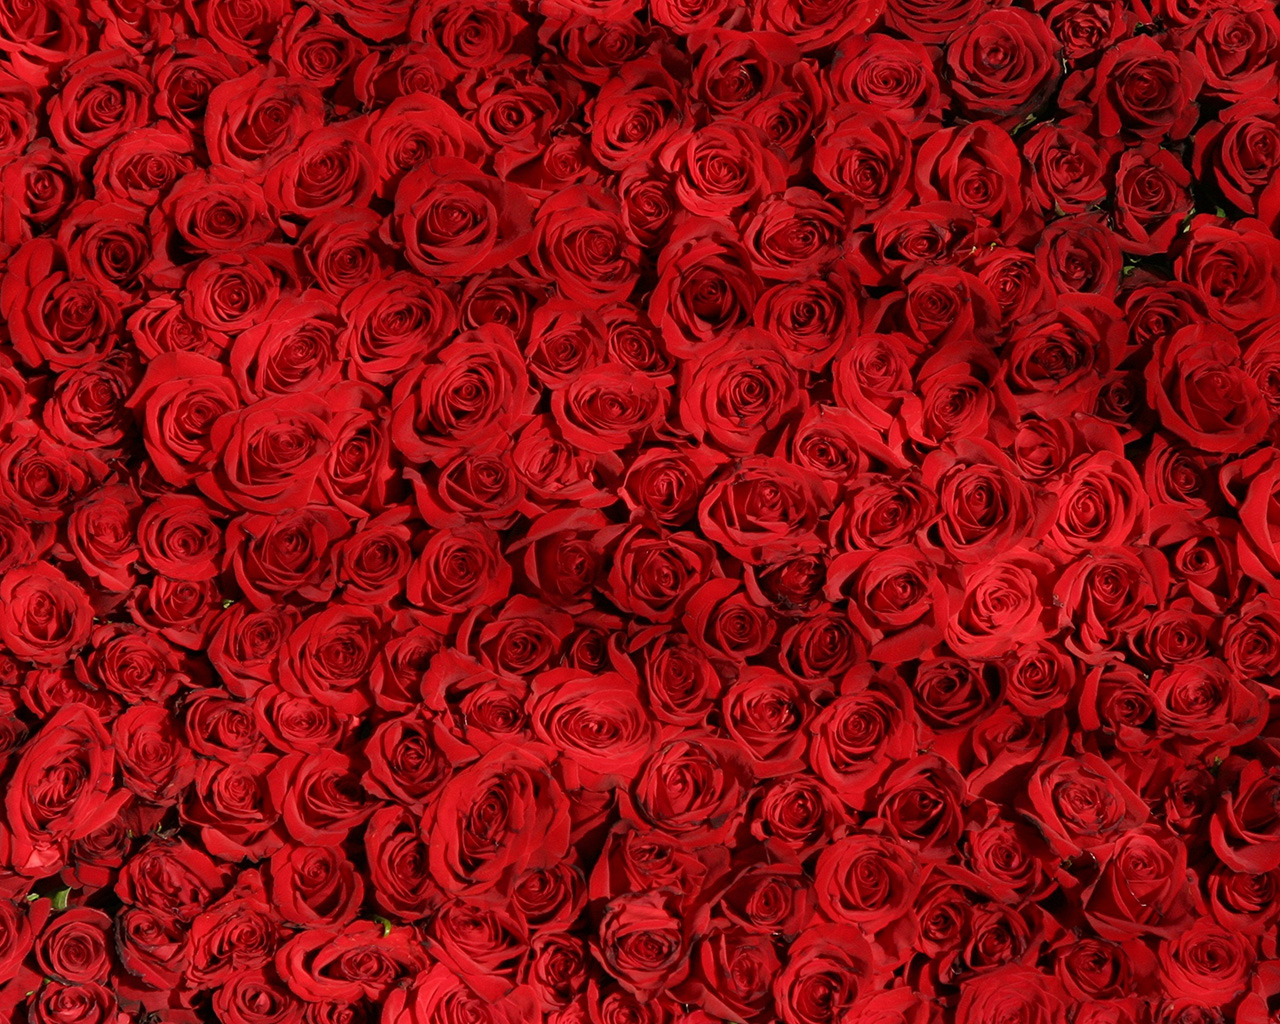 Nb79 Rose Red Pattern Flower Wallpaper